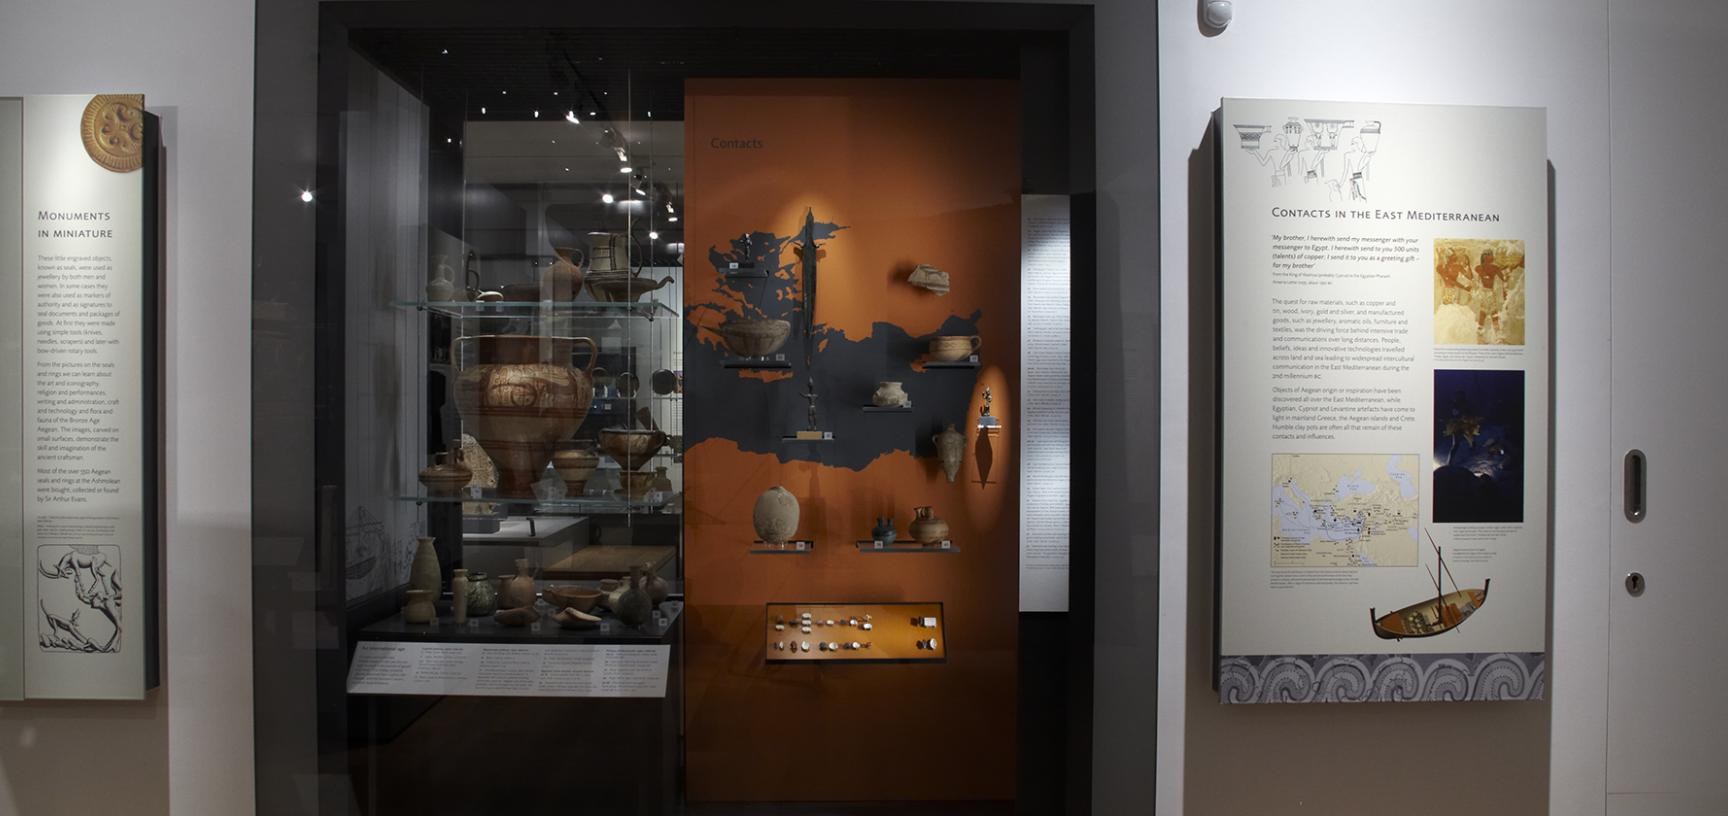 The Aegean World Gallery at the Ashmolean Museum